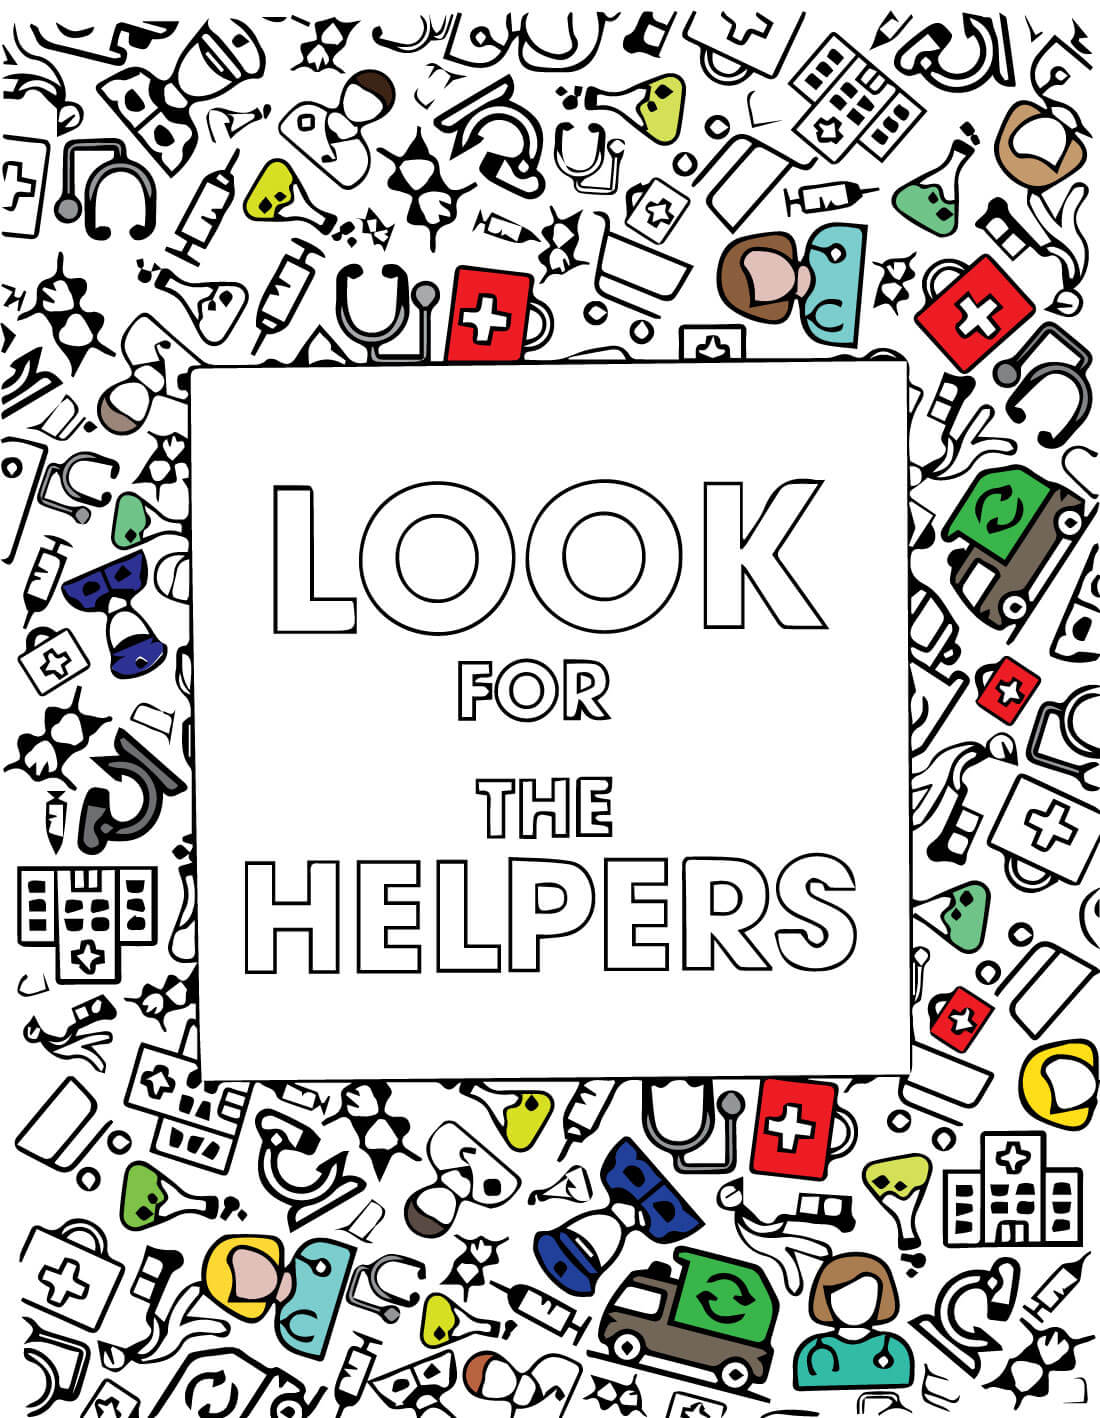 Look for the Helpers Coloring Page - filled in